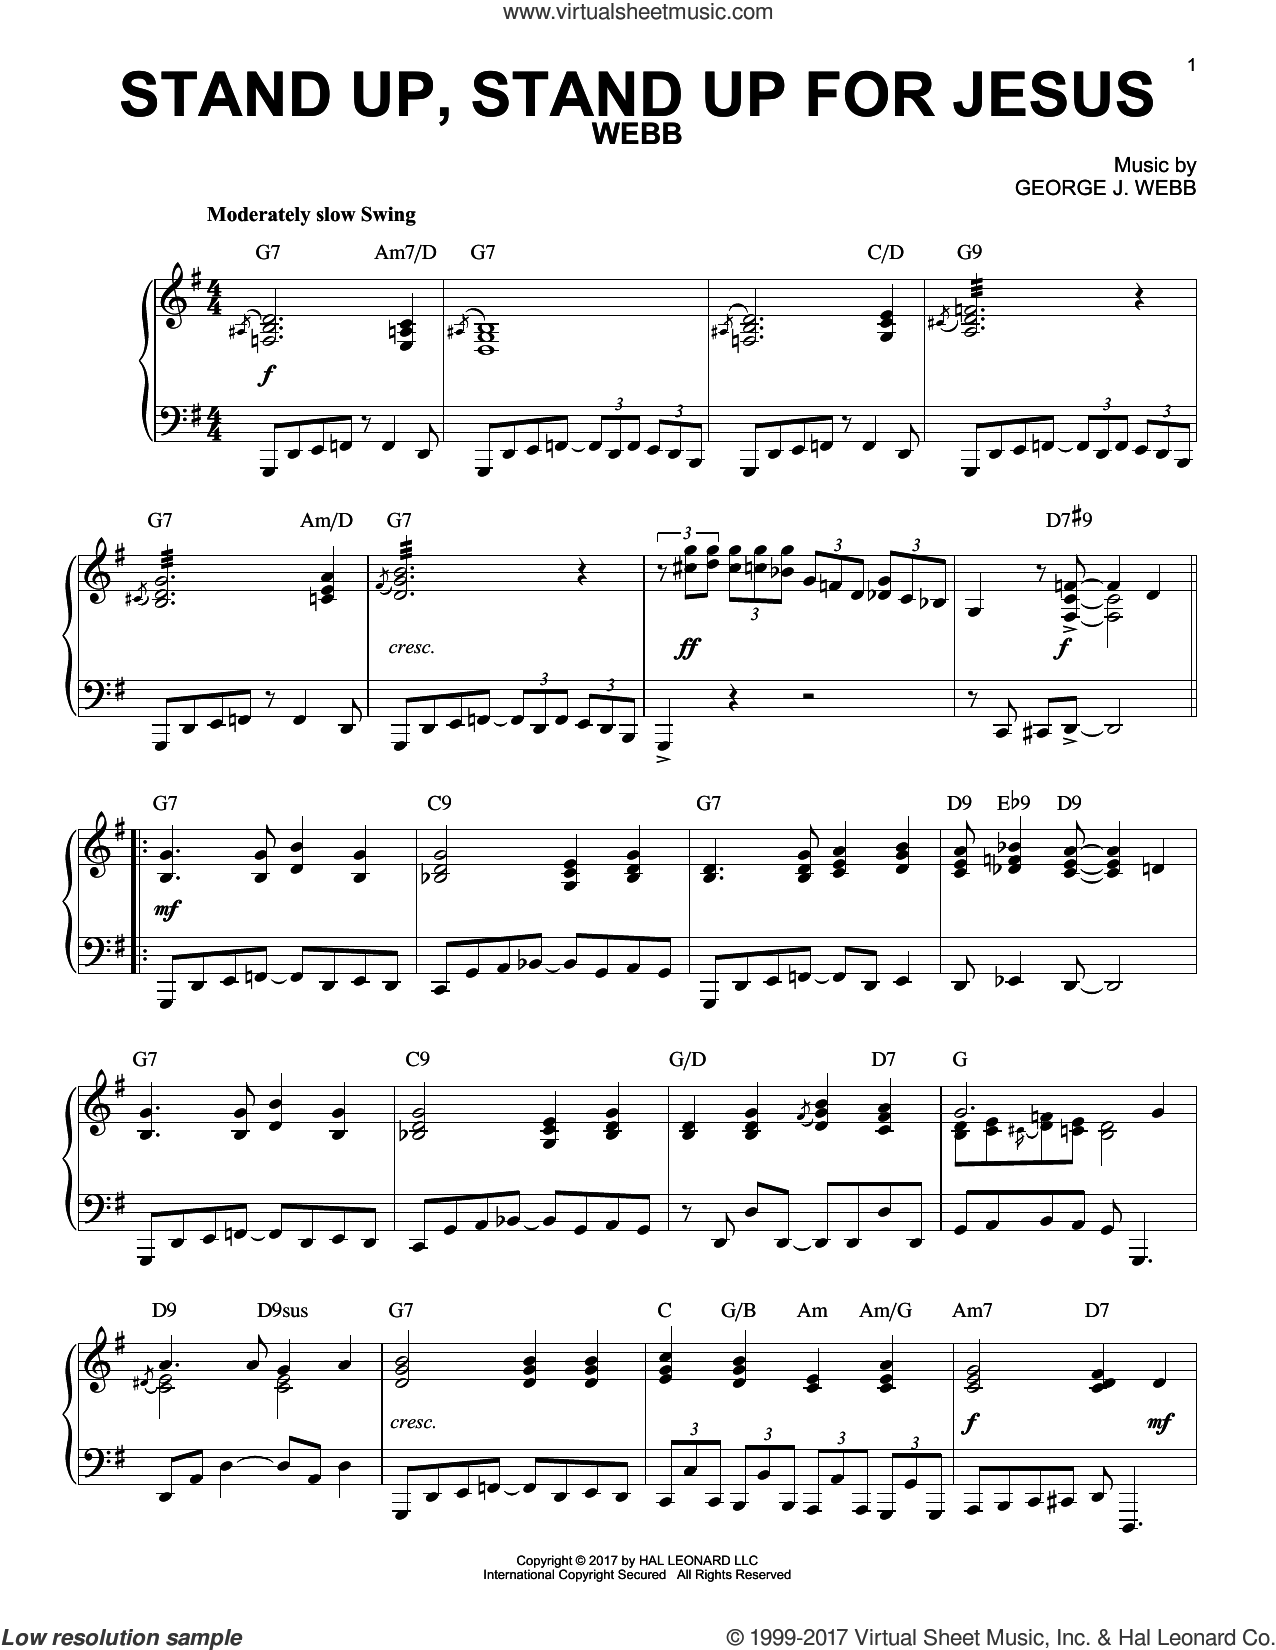 Stand Up, Stand Up For Jesus sheet music for piano solo by George Webb and George Duffield, Jr., intermediate skill level